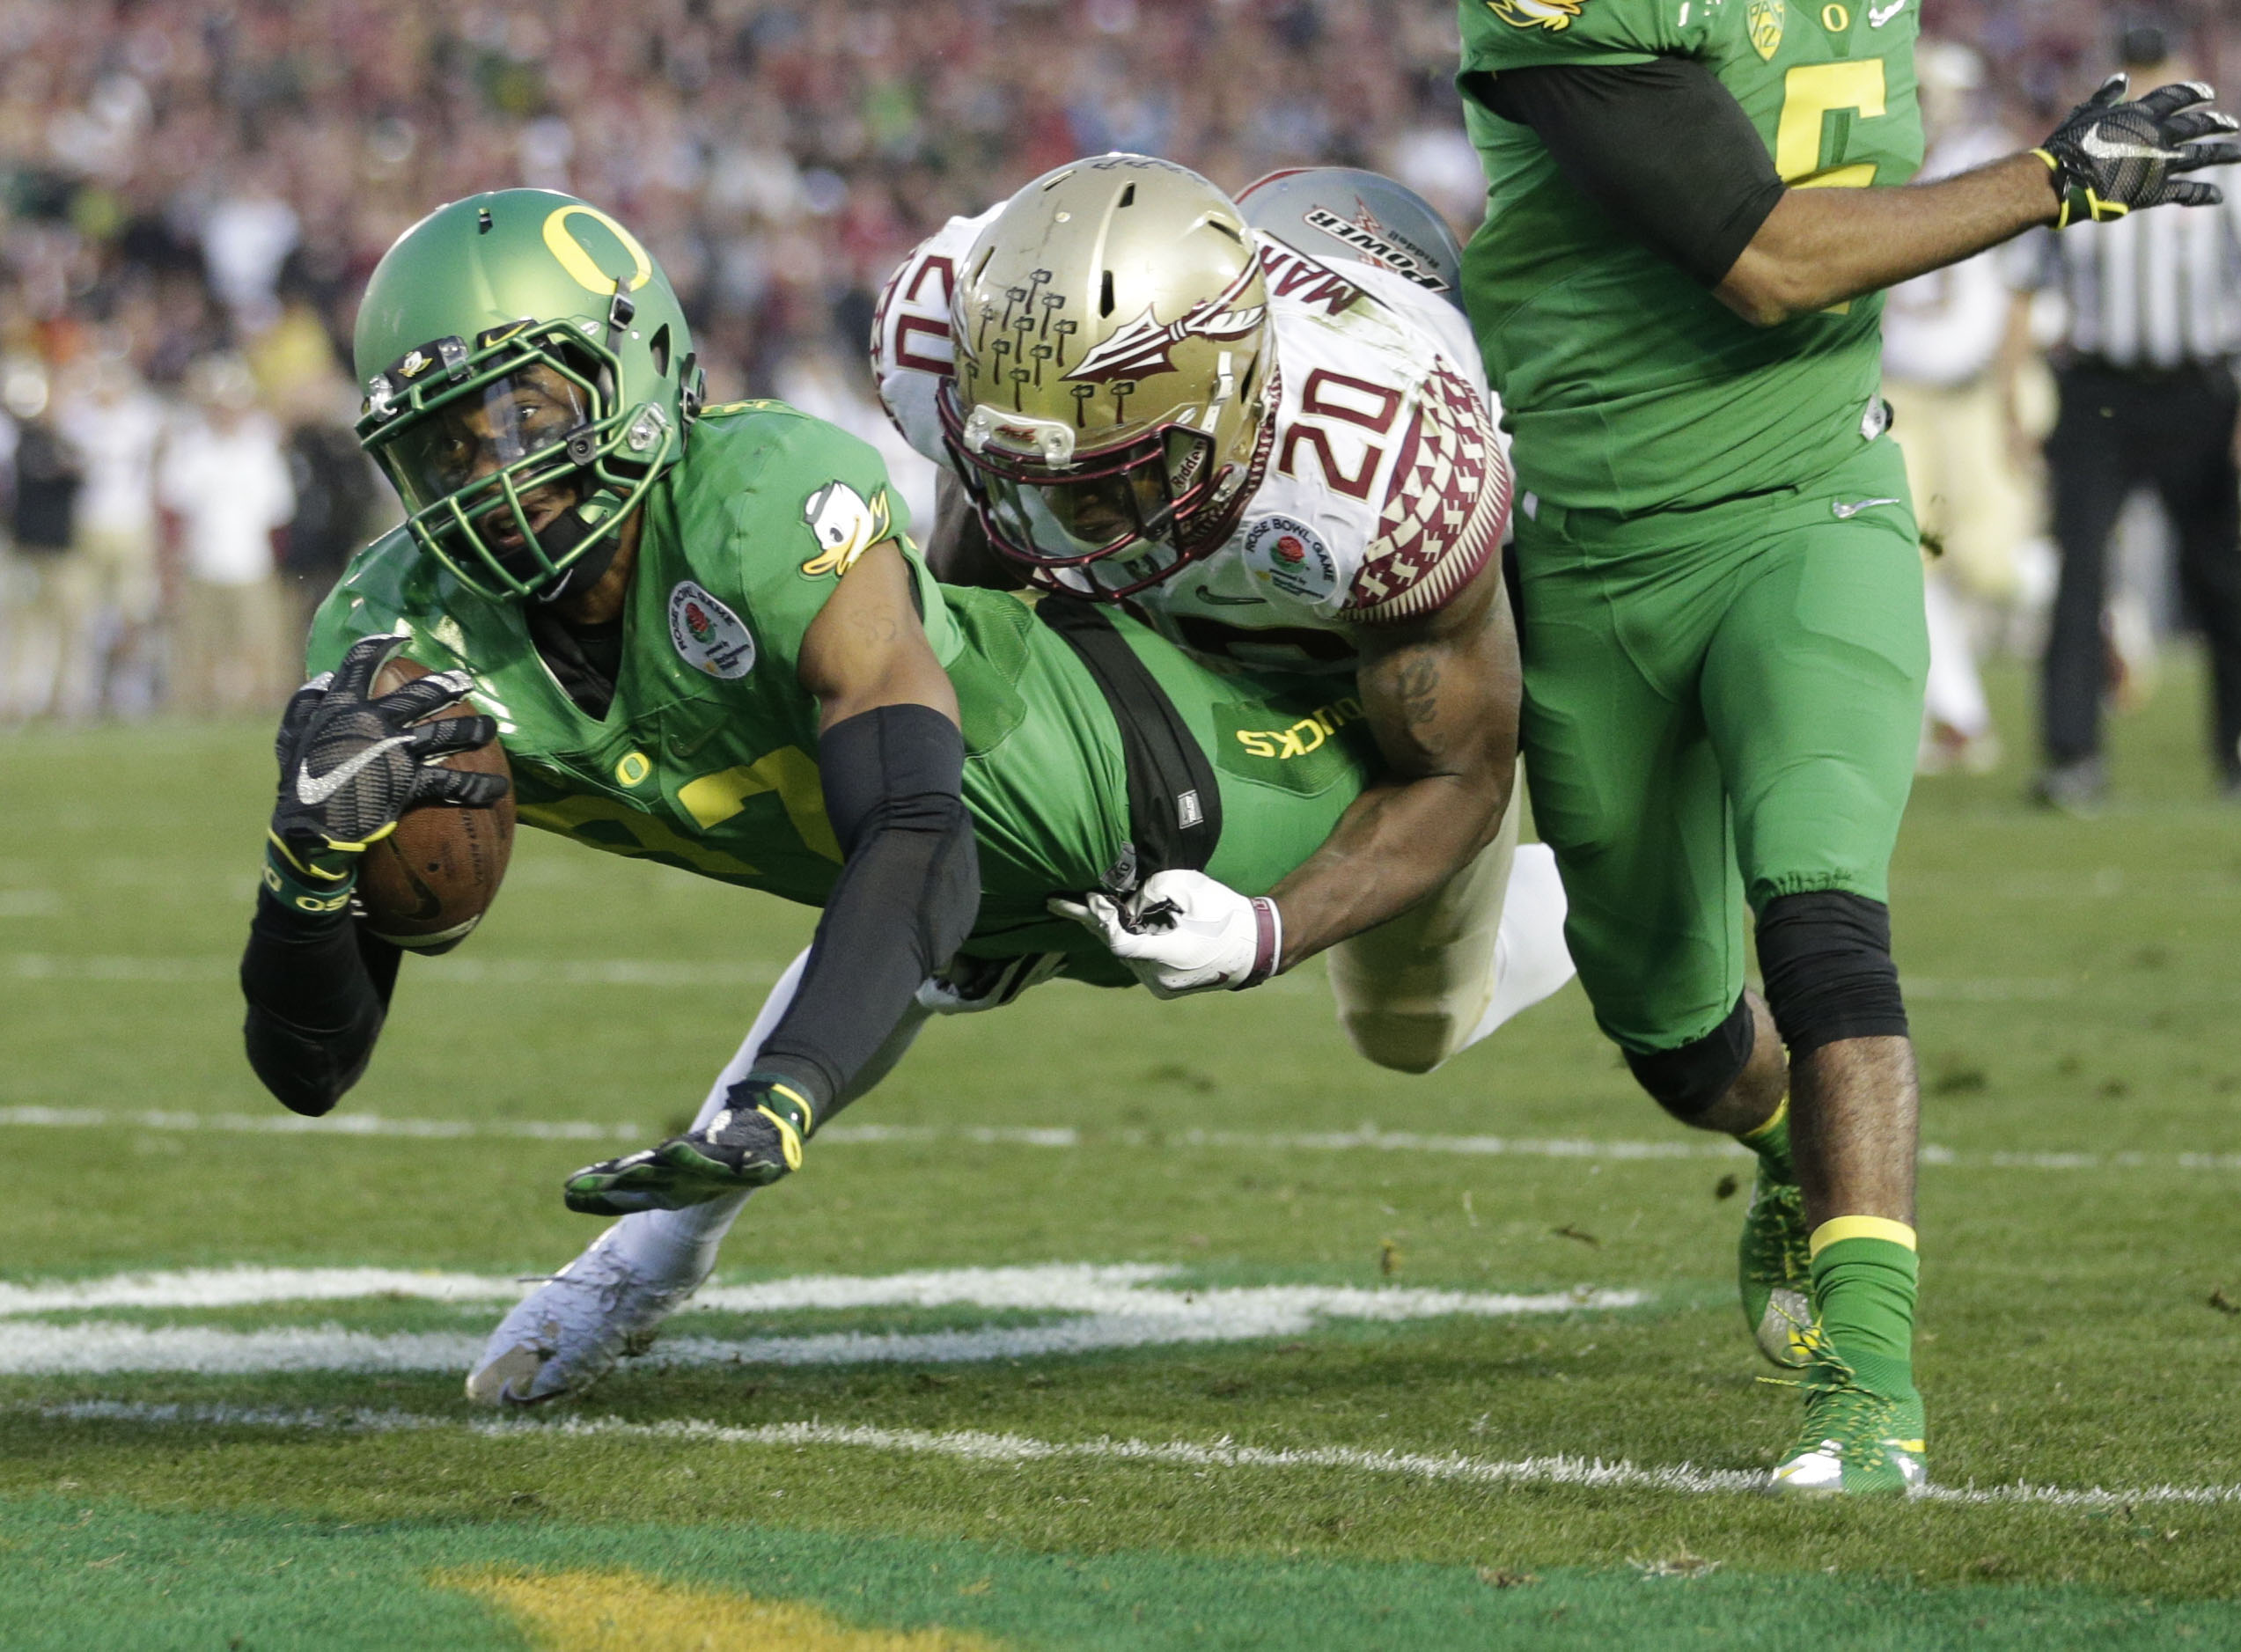 Oregon wide receiver Darren Carrington, scores under pressure by Florida State defensive back Trey Marshall during the second half of the Rose Bowl NCAA college football playoff semifinal, Thursday, Jan. 1, 2015 in Pasadena, Calif. (AP Photo/Jae C. Hong)